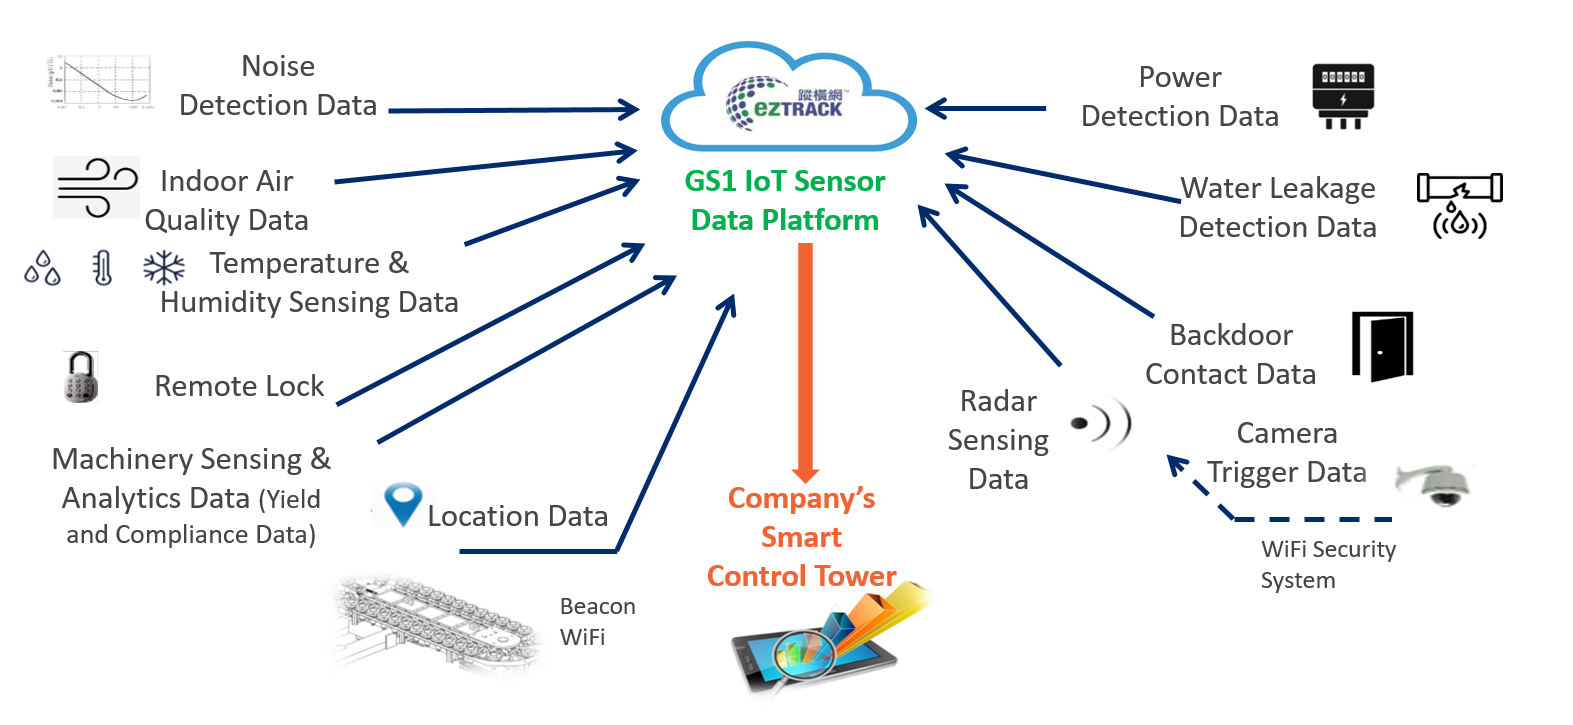 ezTRACK: GS1 IoT Sensor Data Platform